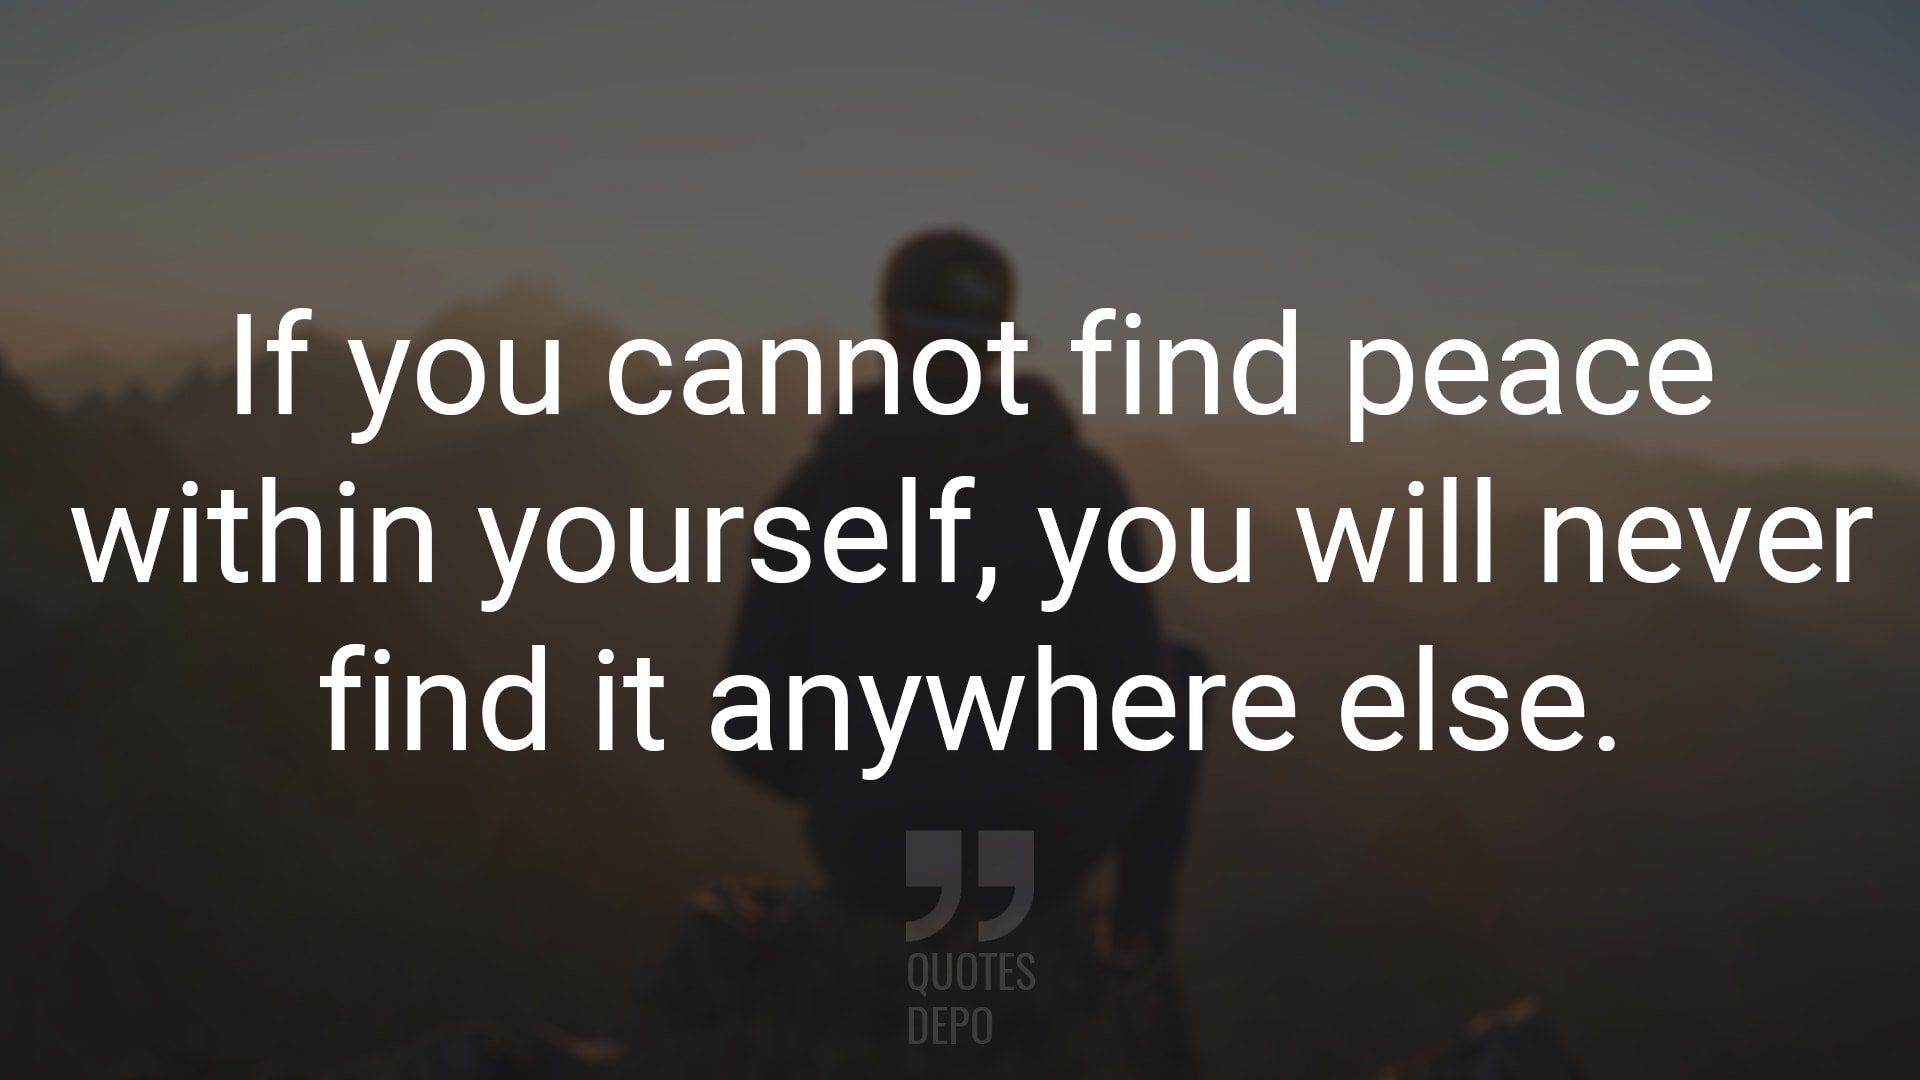 if you cannot find peace within yourself